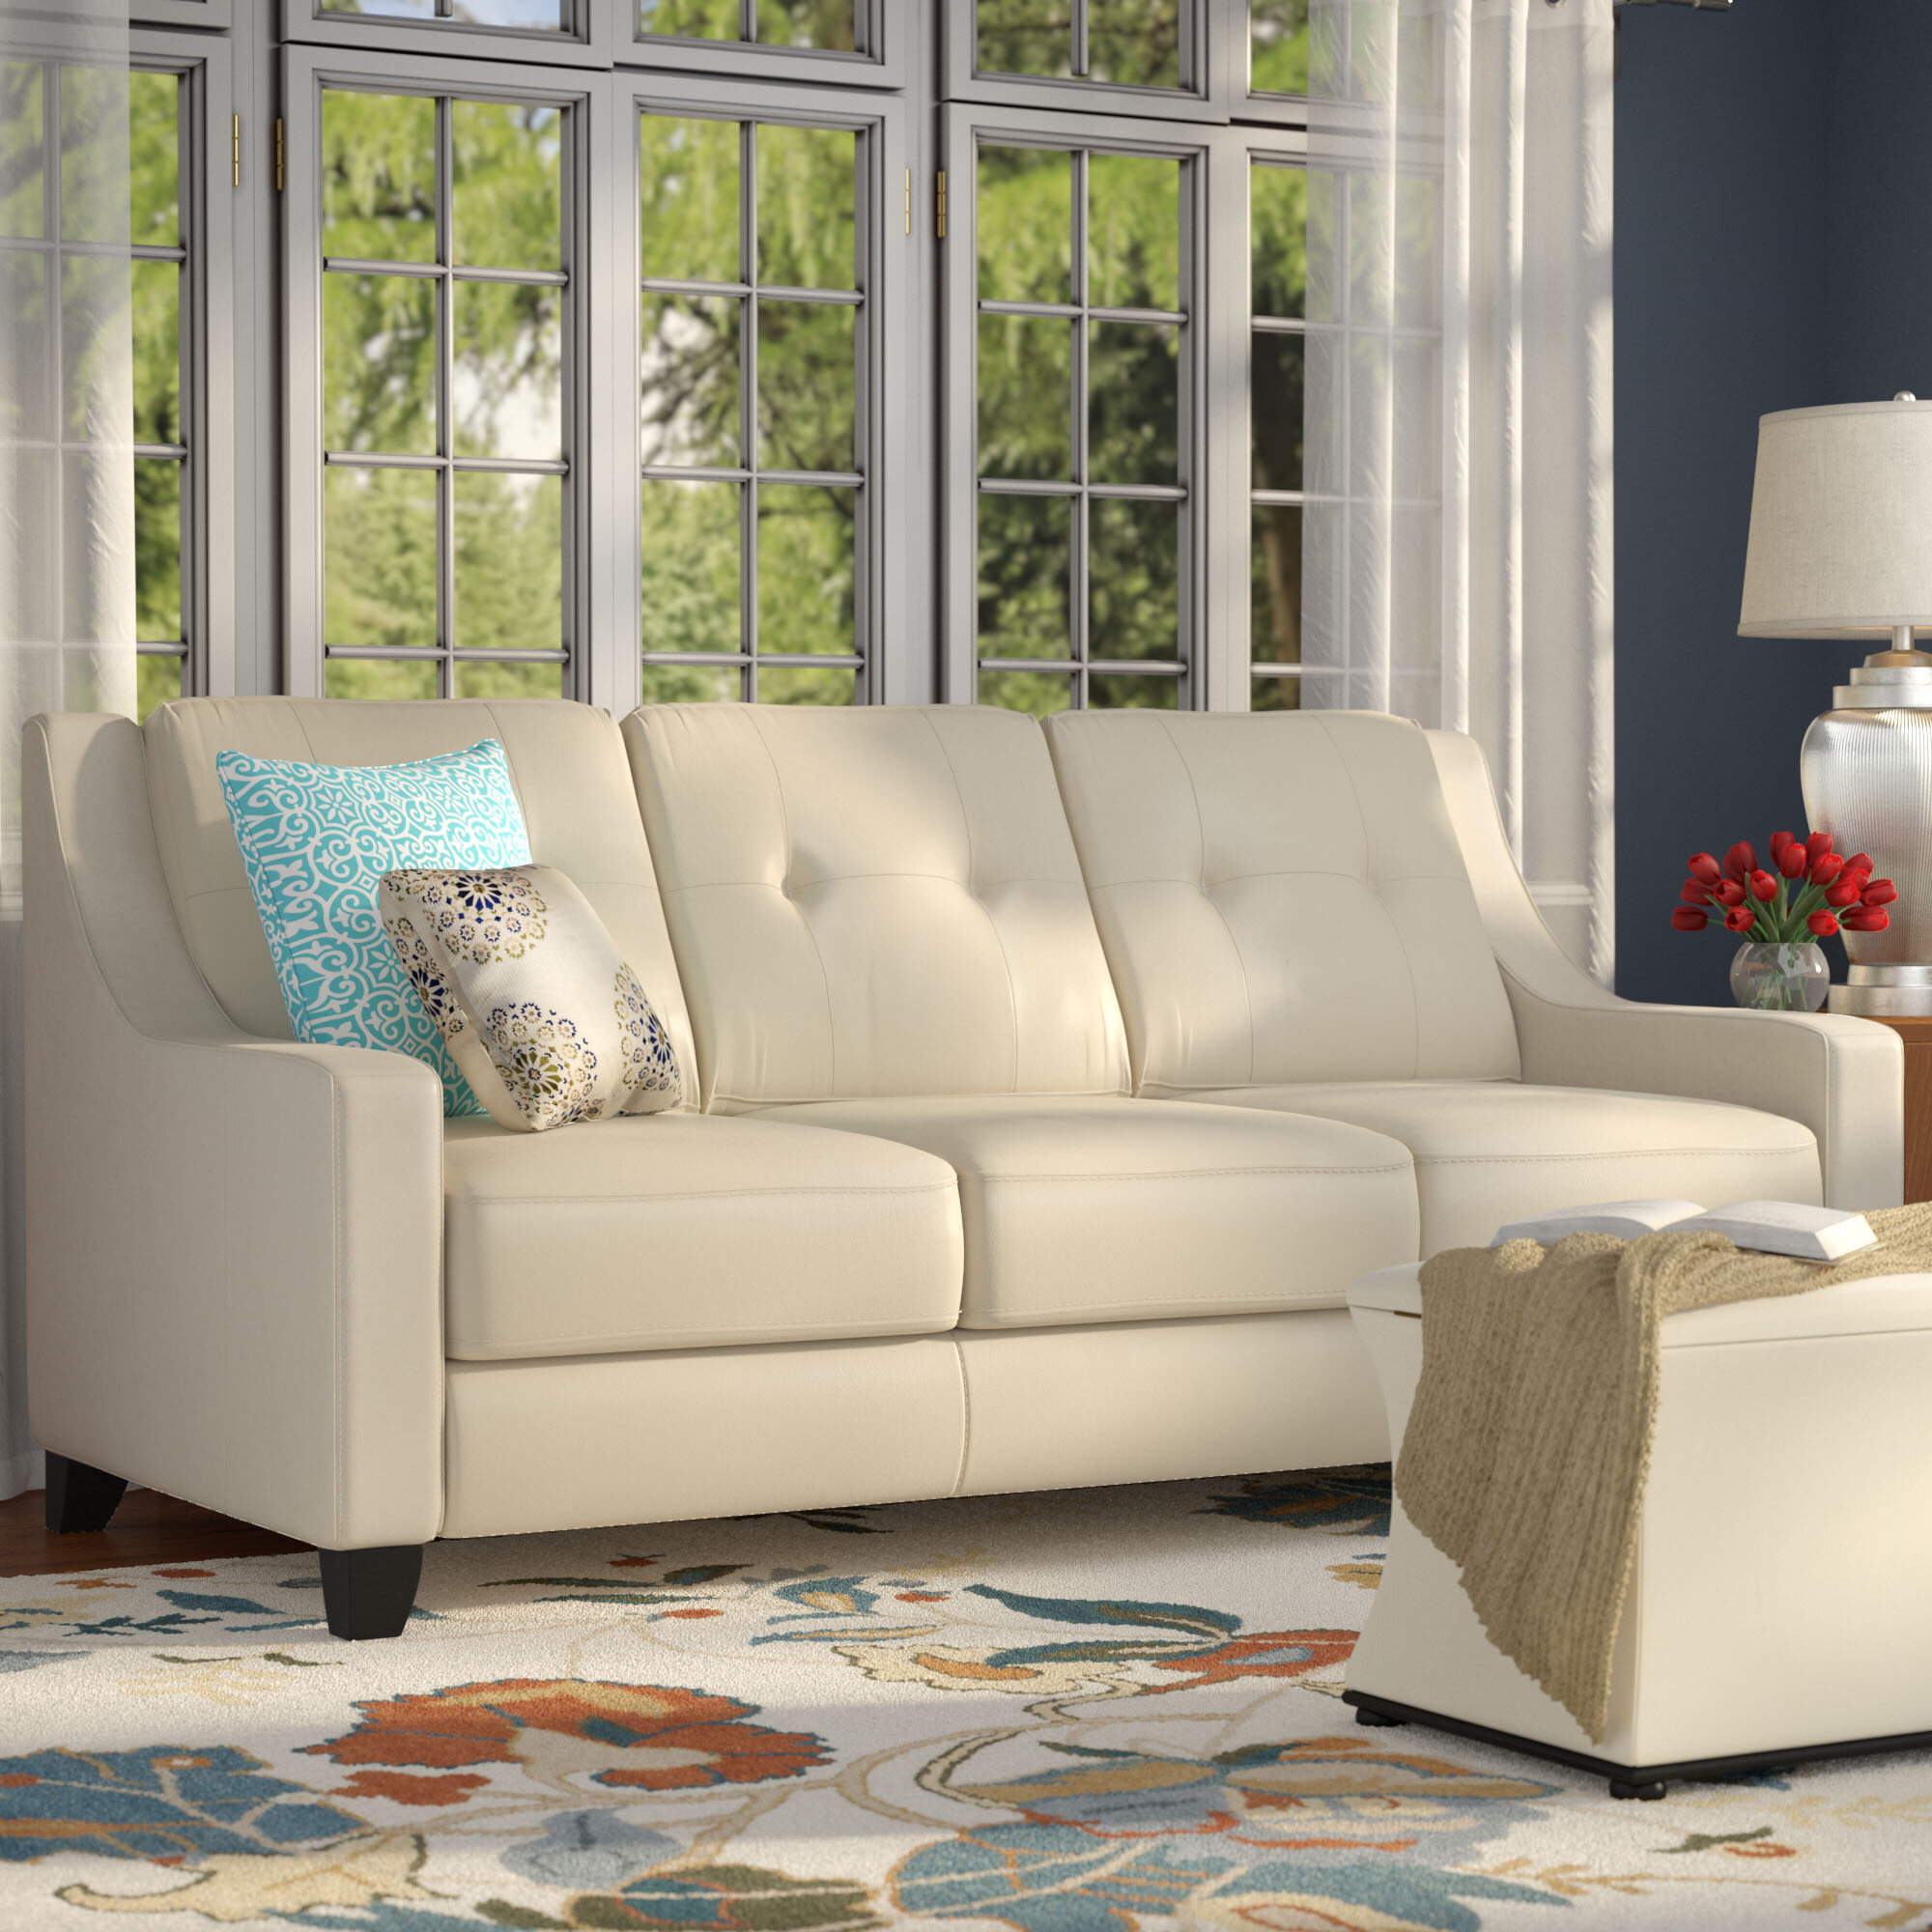 Red Barrel Studio Stouffer Leather Sofa Sleeper U0026 Reviews | Wayfair